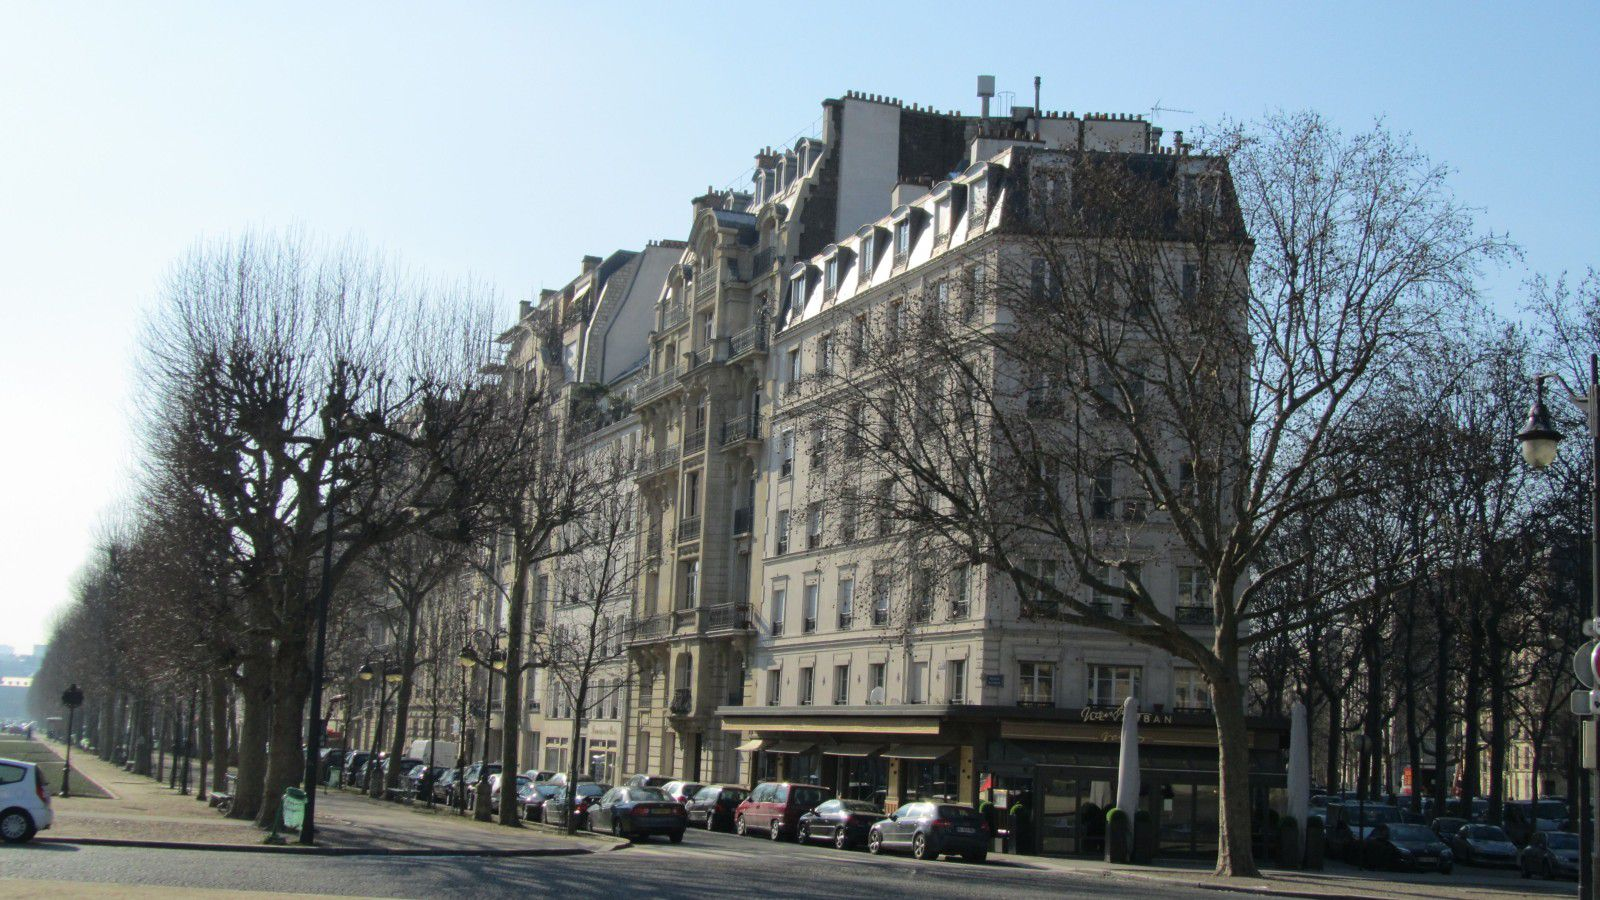 http://idata.over-blog.com/0/32/10/53/villes-geo-urbaine/Haussmannisation-Paris.jpg